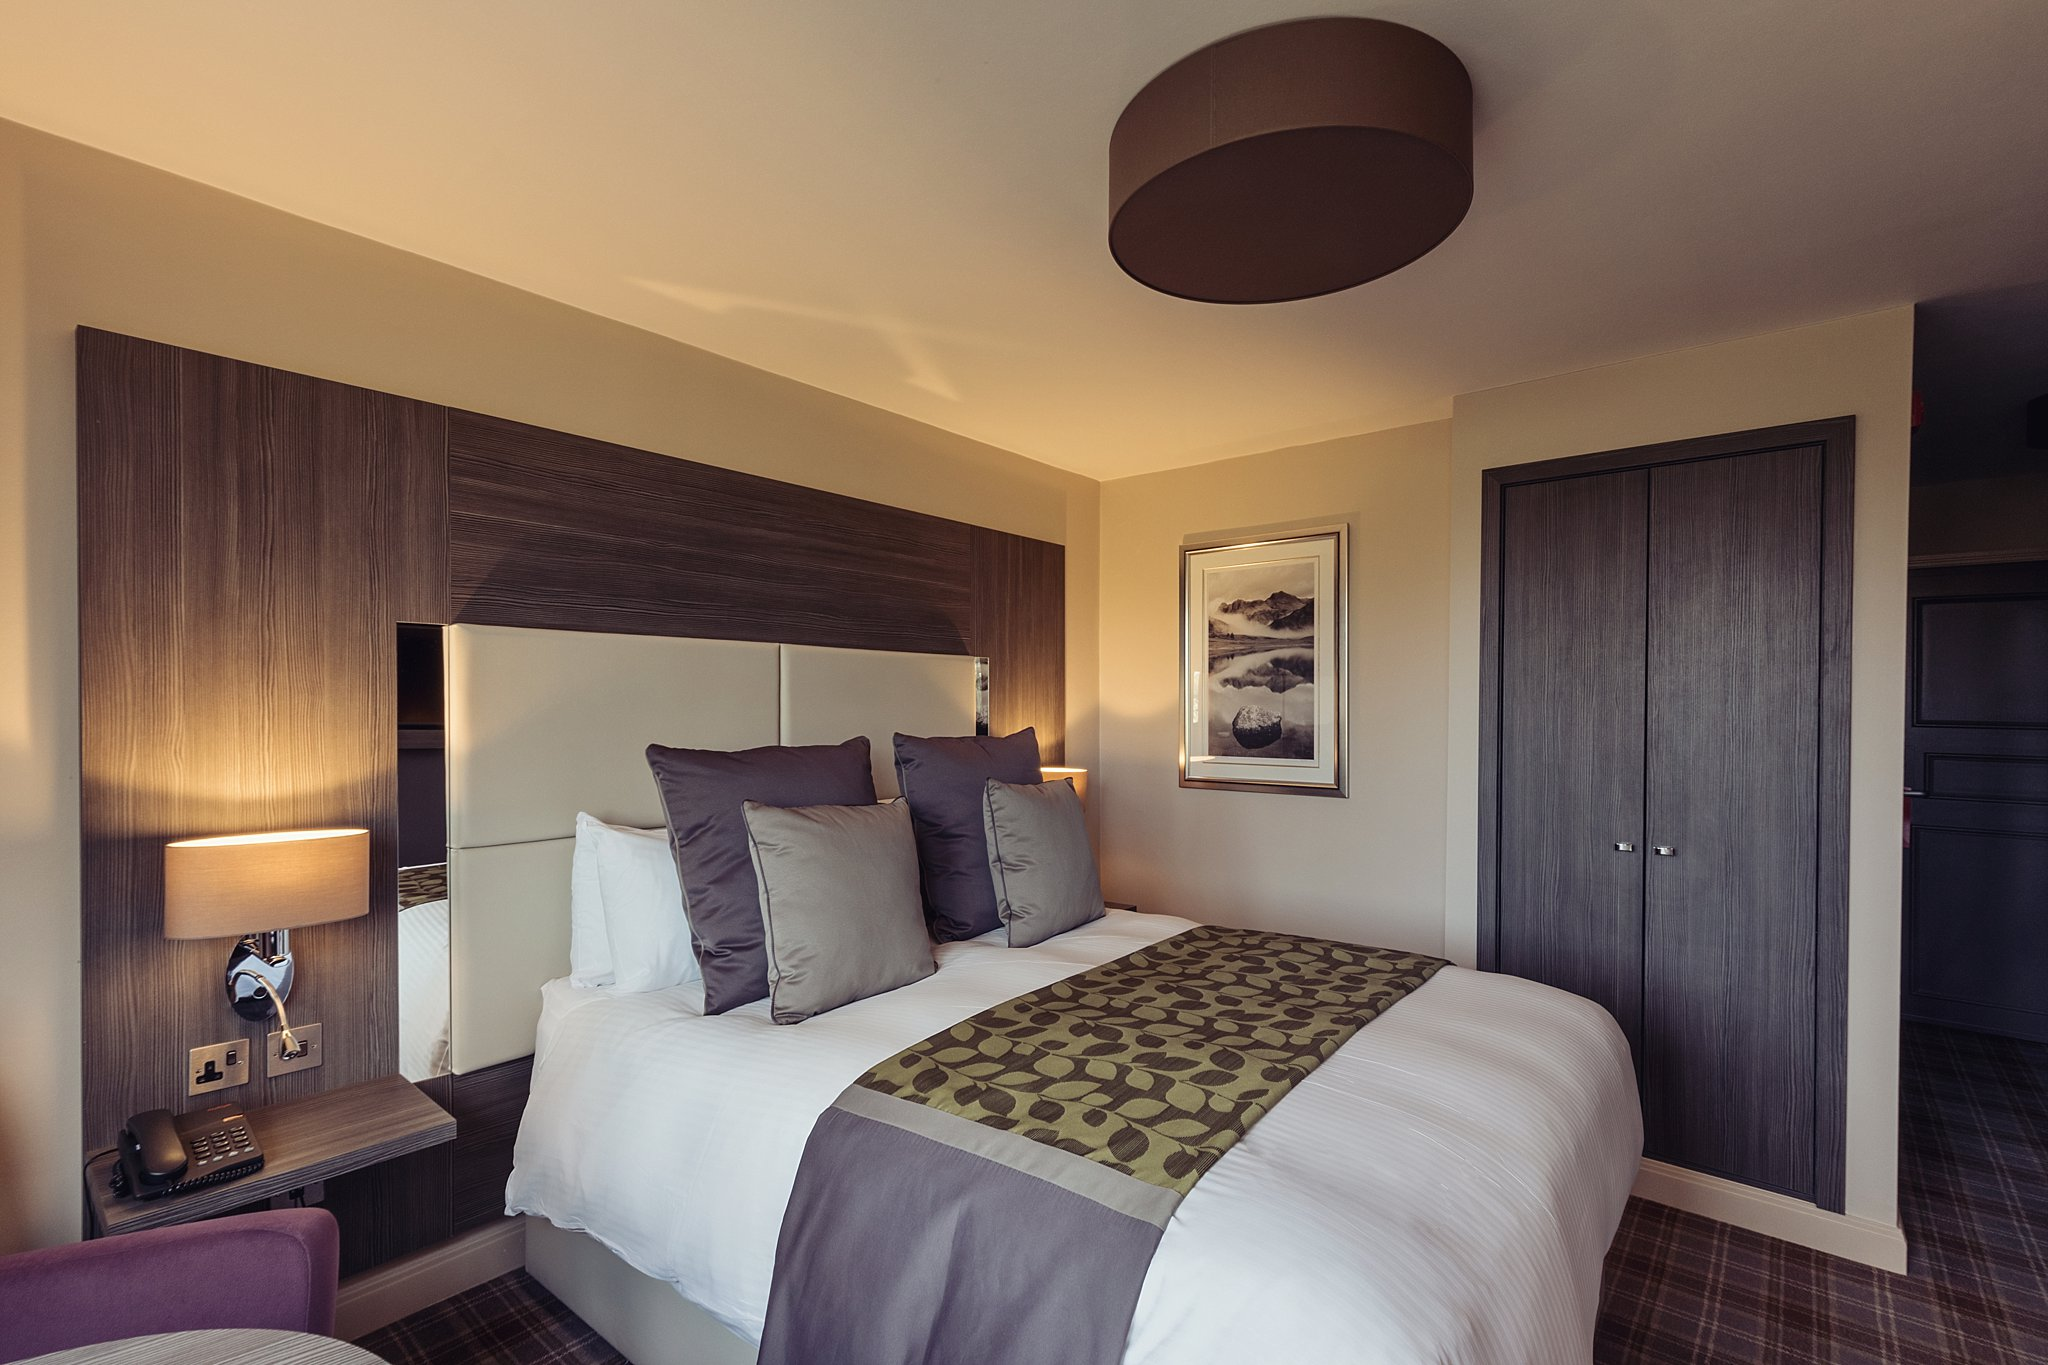 Adjoining Contempo rooms